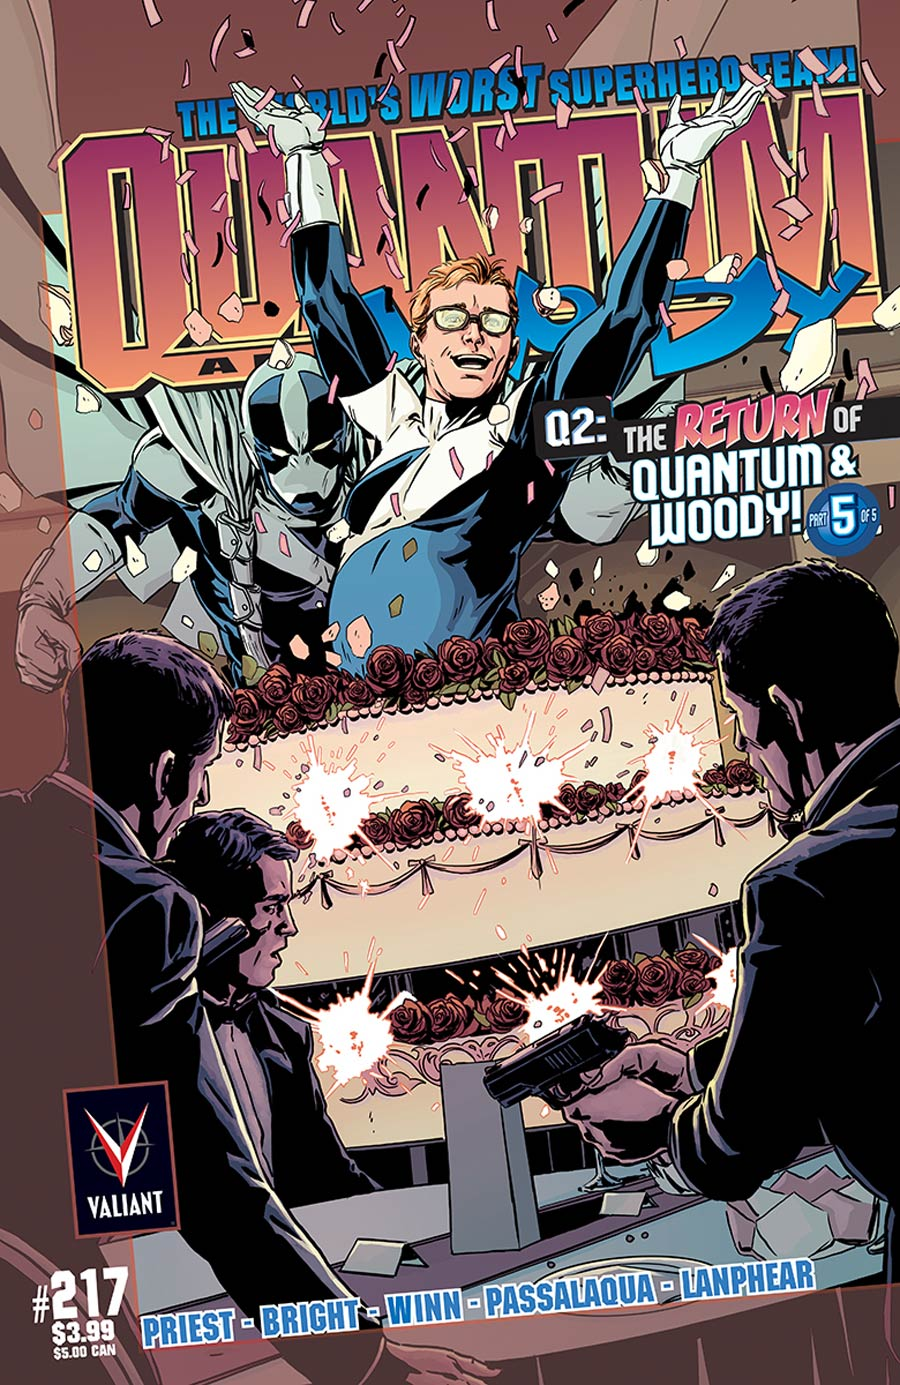 Q2 Return Of Quantum & Woody #5 Cover C Incentive Marc Laming Throwback Variant Cover